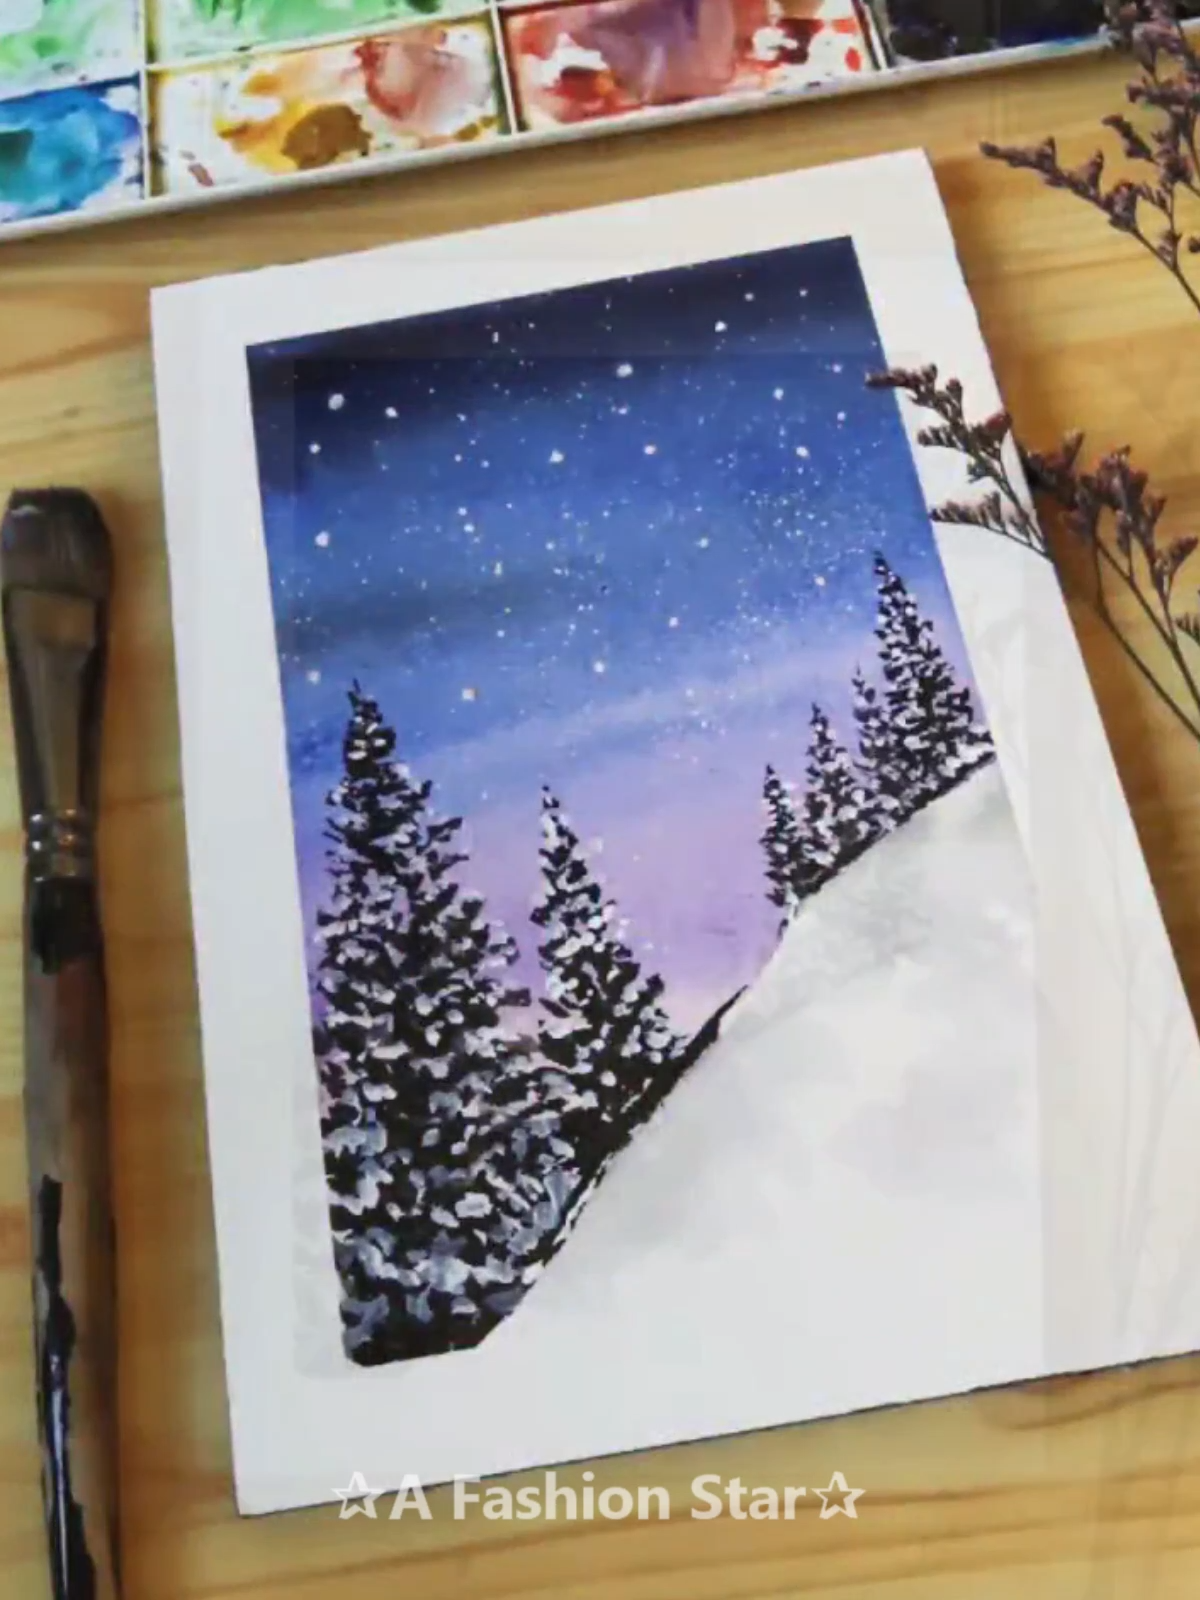 14 Easy And Beautiful Watercolor Painting - Watercolor Painting Ideas For Beginner #watercolorart